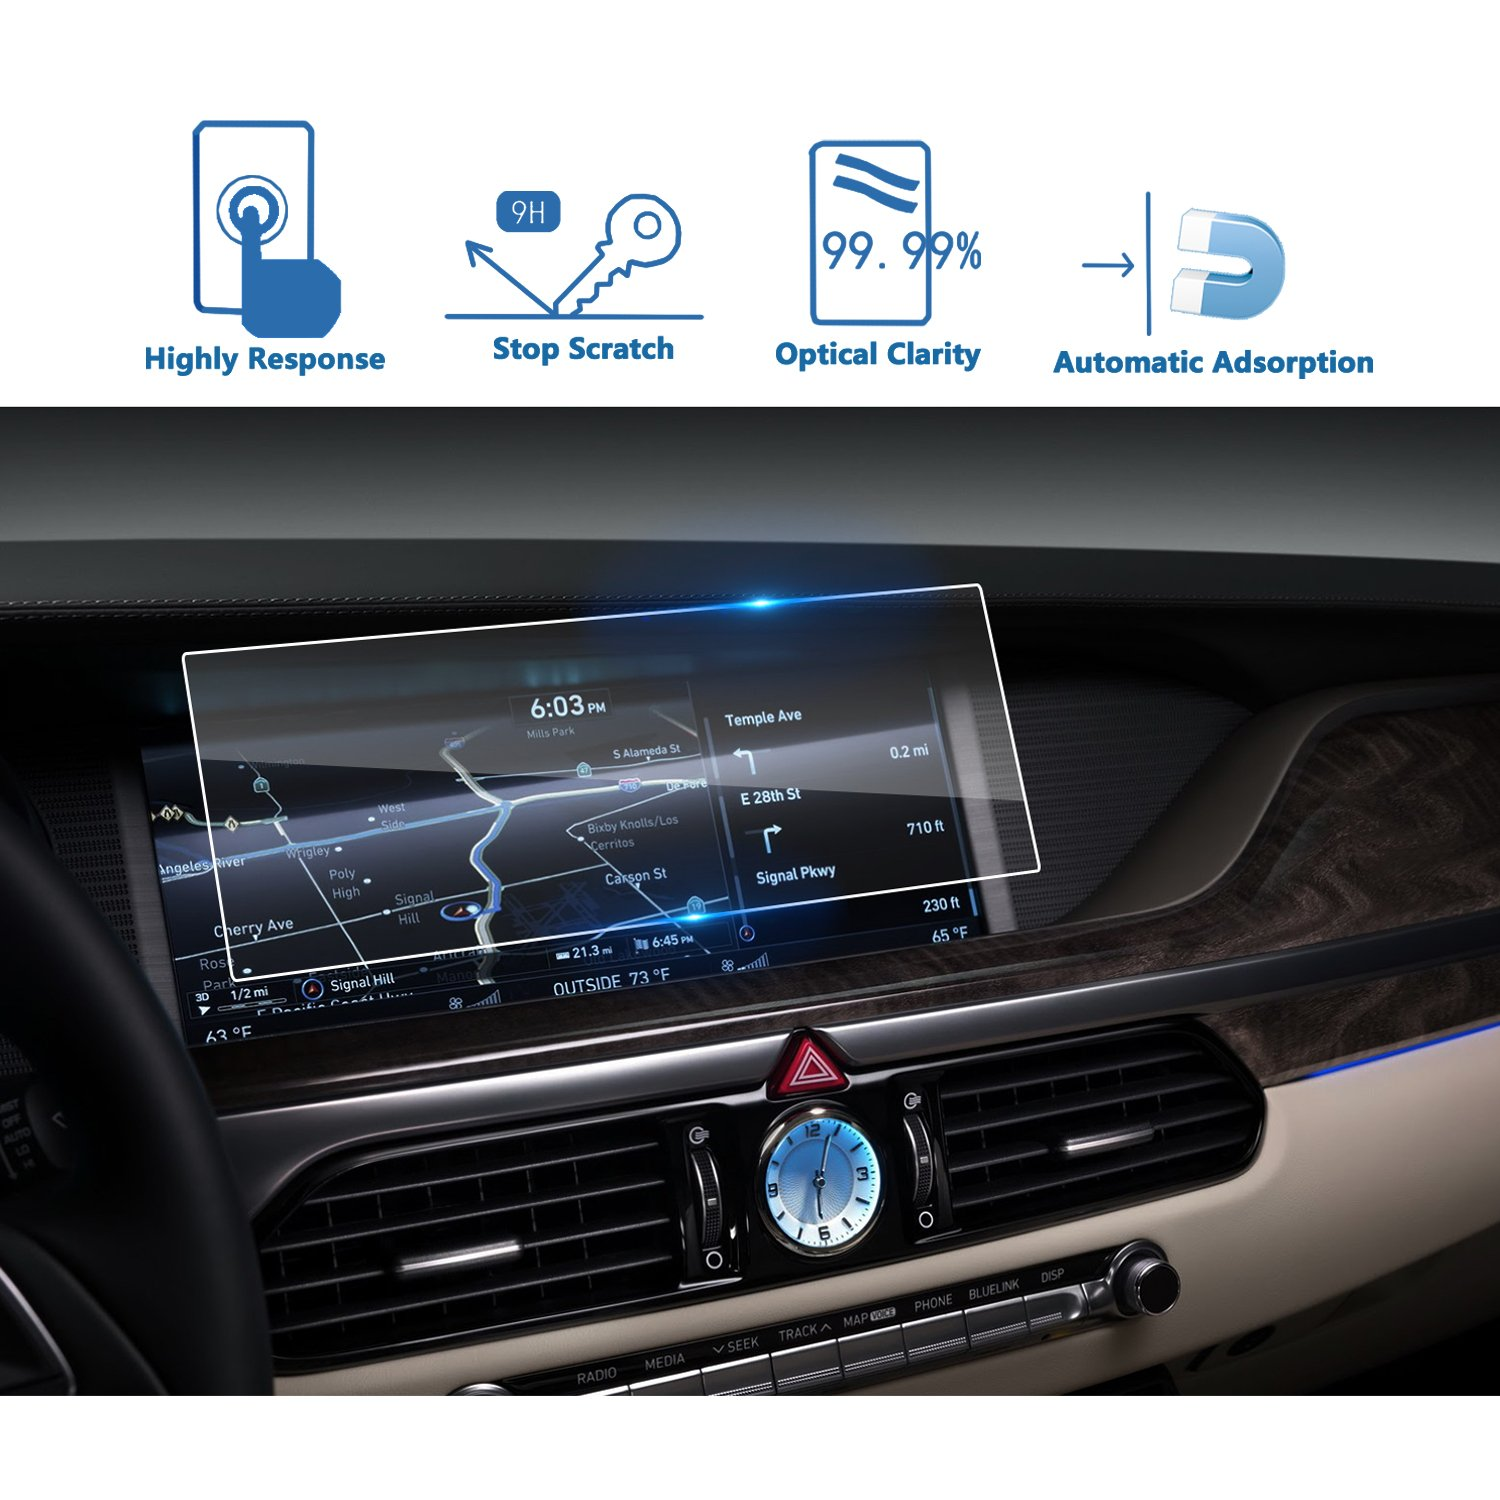 LFOTPP Car Navigation Screen Protector for 2017-2018 Genesis G90 12.3 Inch, Tempered Glass Infotainment Center Touch Screen Protector Anti Scratch High Clarity LiFan US01CMHGG12.3 9H